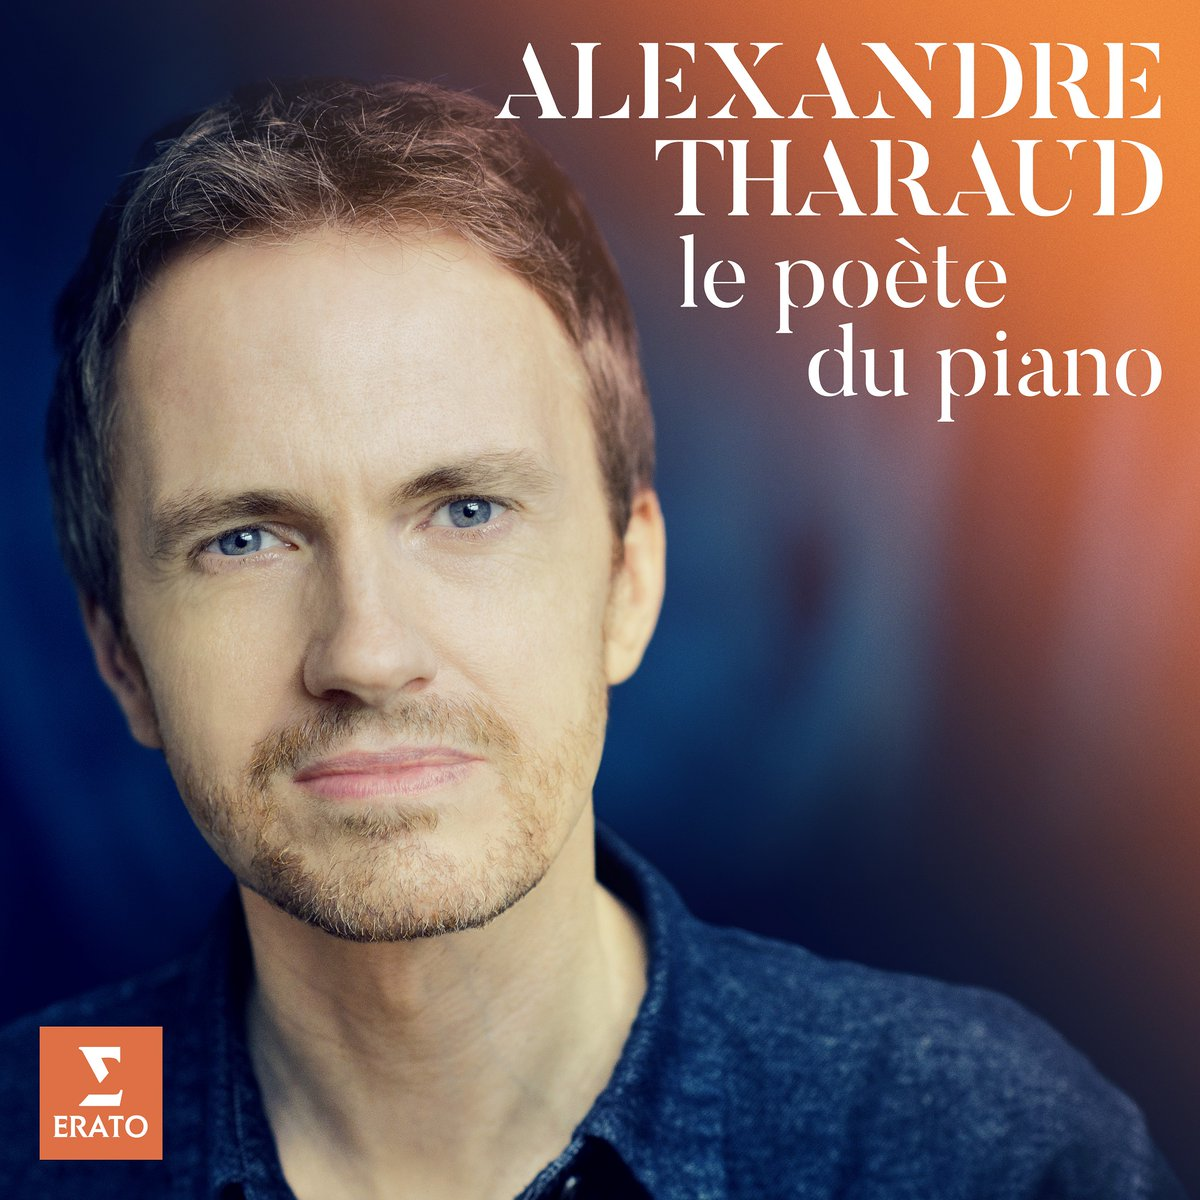 🎹 @atharaud plays Mozart's splendid Turkish March (from Piano Sonata No. 11) in the newest single from Le Poète du Piano. Listen here: https://t.co/hFNa5so2lX https://t.co/mRCcZWS4n9